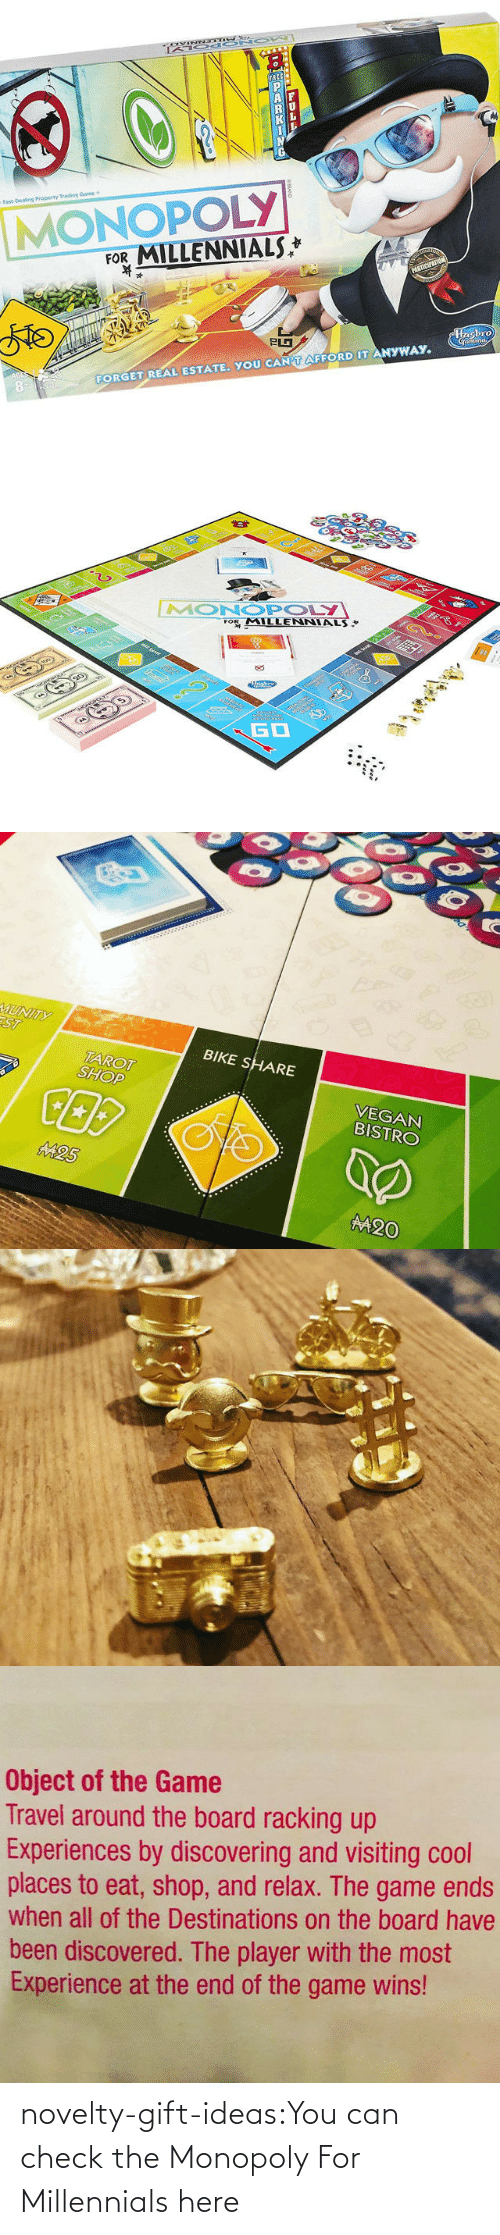 Af, Monopoly, and The Game: P  AF  K  Fast-Dealing Property Trading Game  MONOPOLY  FOR MILLENNIALS  PRTICIPATION  830  FORGET REAL ESTATE. YOU CAN T AFFORD IT ANYWAY  Hnsbro  Gomina  LL  8AND   E  2  ত  MONOPOLY  FOR MILLENNIALS  ART Ser  www  0arars9  23  GO   MUNITY  ST  BIKE SHARE  VEGAN  BISTRO  TAROT  SHOP  M25  M20   Object of the Game  Travel around the board racking up  Experiences by discovering and visiting cool  places to eat, shop, and relax. The game ends  when all of the Destinations on the board have  been discovered. The player with the most  Experience at the end of the game wins! novelty-gift-ideas:You can check theMonopoly For Millennialshere